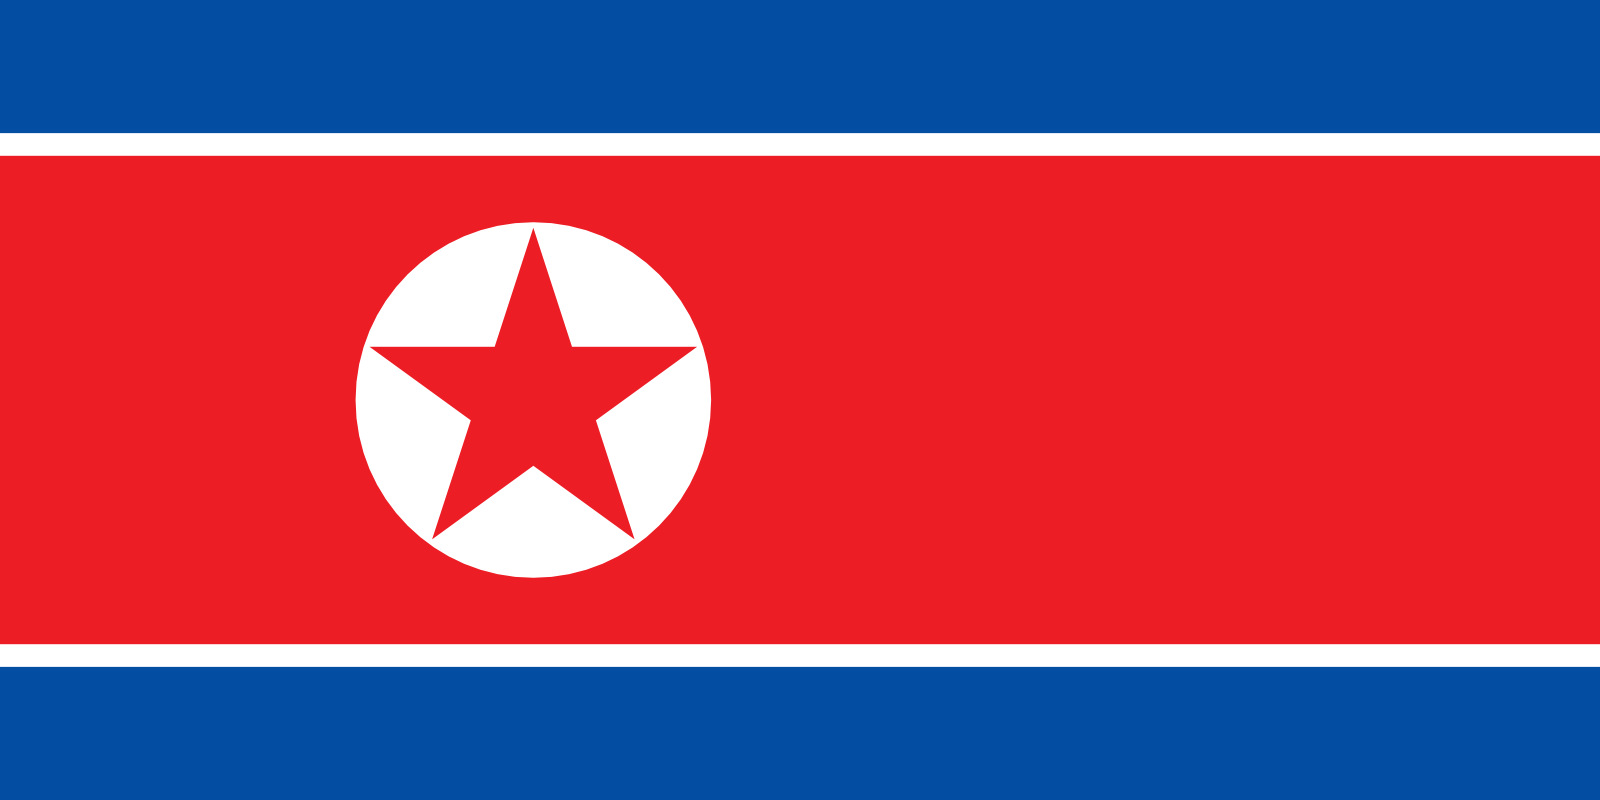 Pin By Evelyn Maylen Flores On Bandeiras Dos Paises North Korea Flag North Korean Flag North Korea Facts